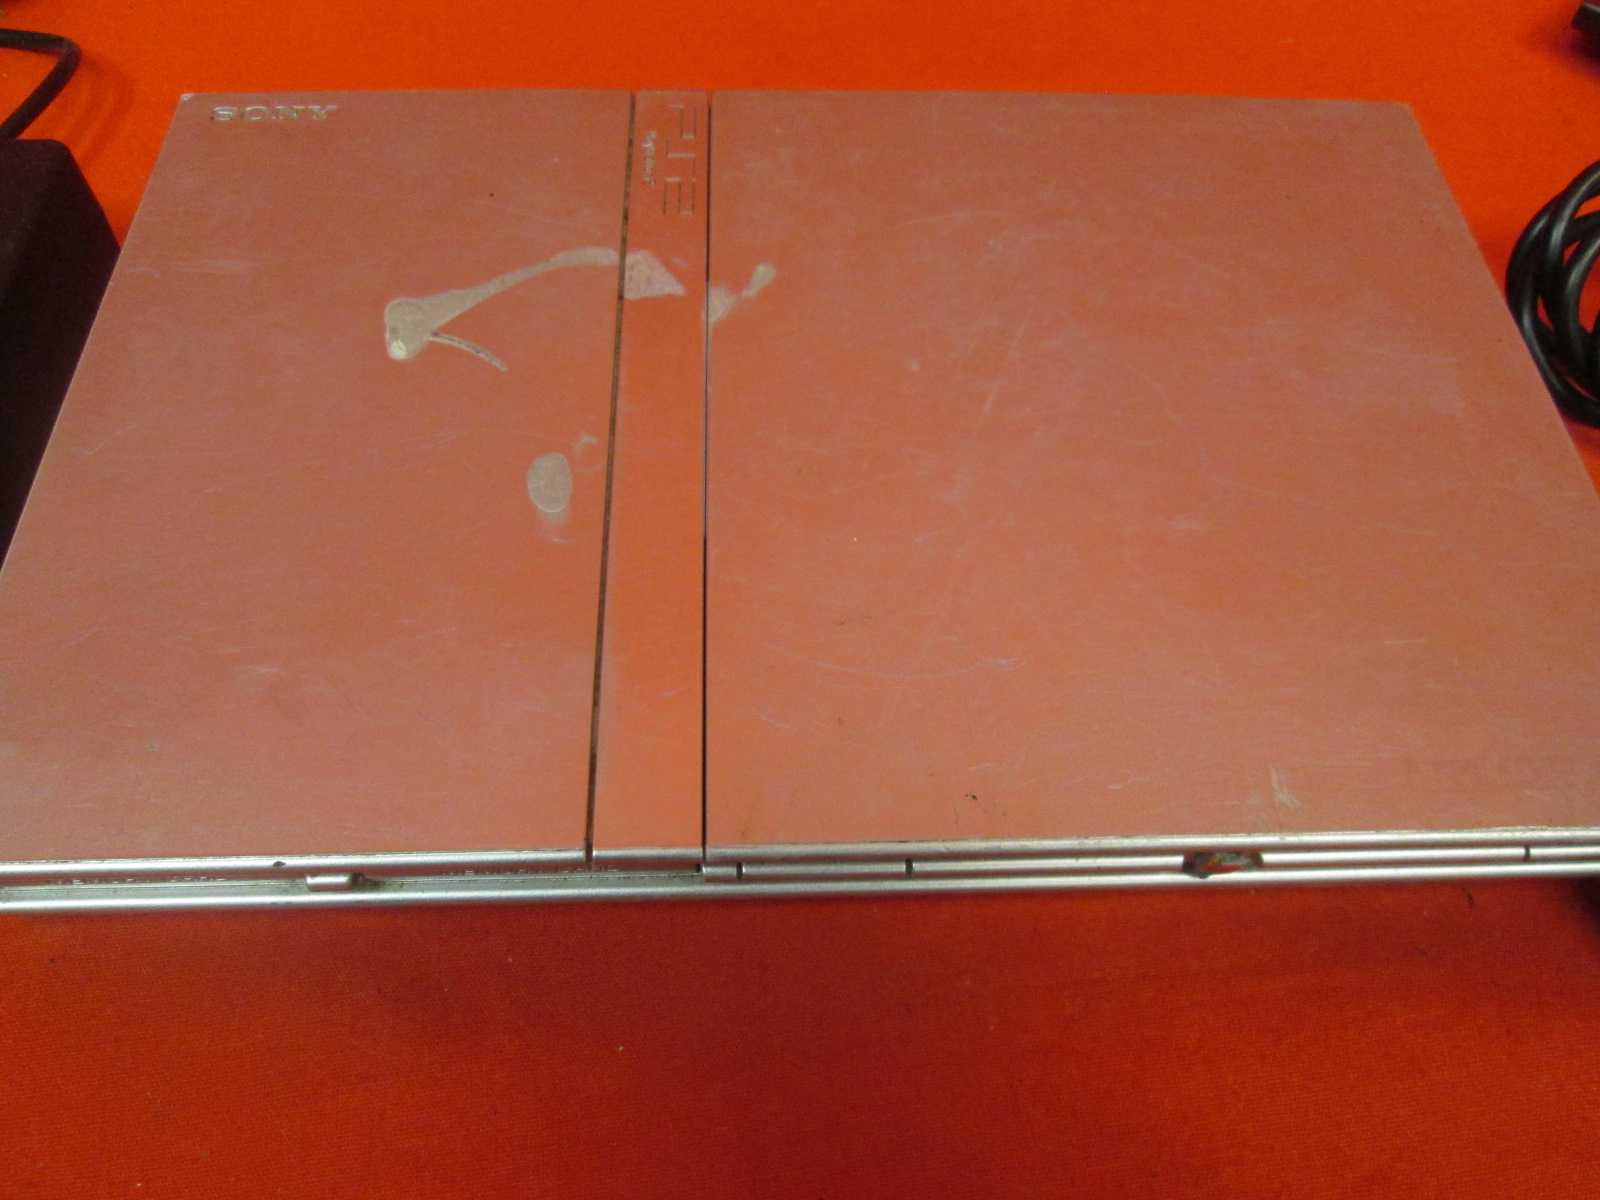 Image 1 of PlayStation 2 Slim Silver Video Game Console With Controller